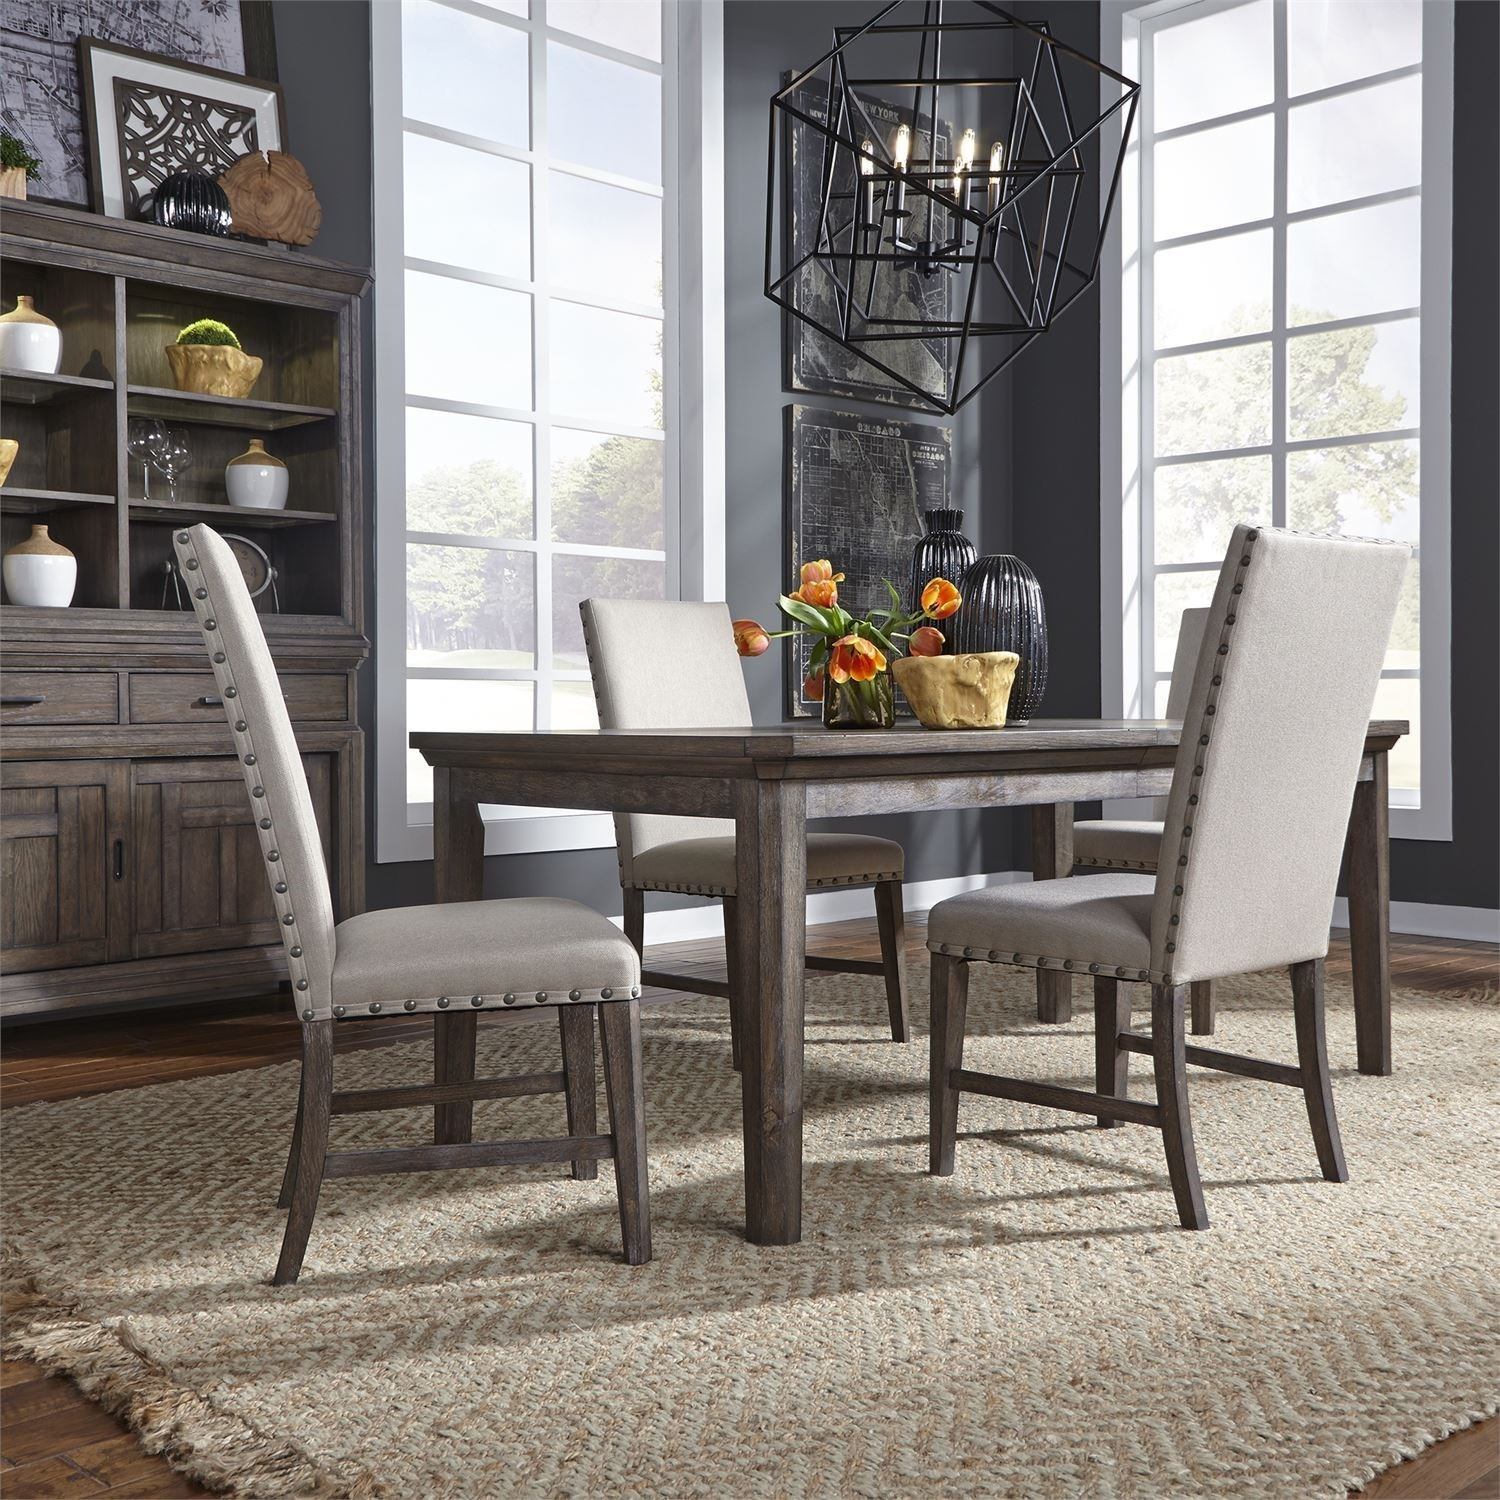 Artisan Prairie 5-Piece Rectangular Table Set by Liberty Furniture at Furniture and ApplianceMart